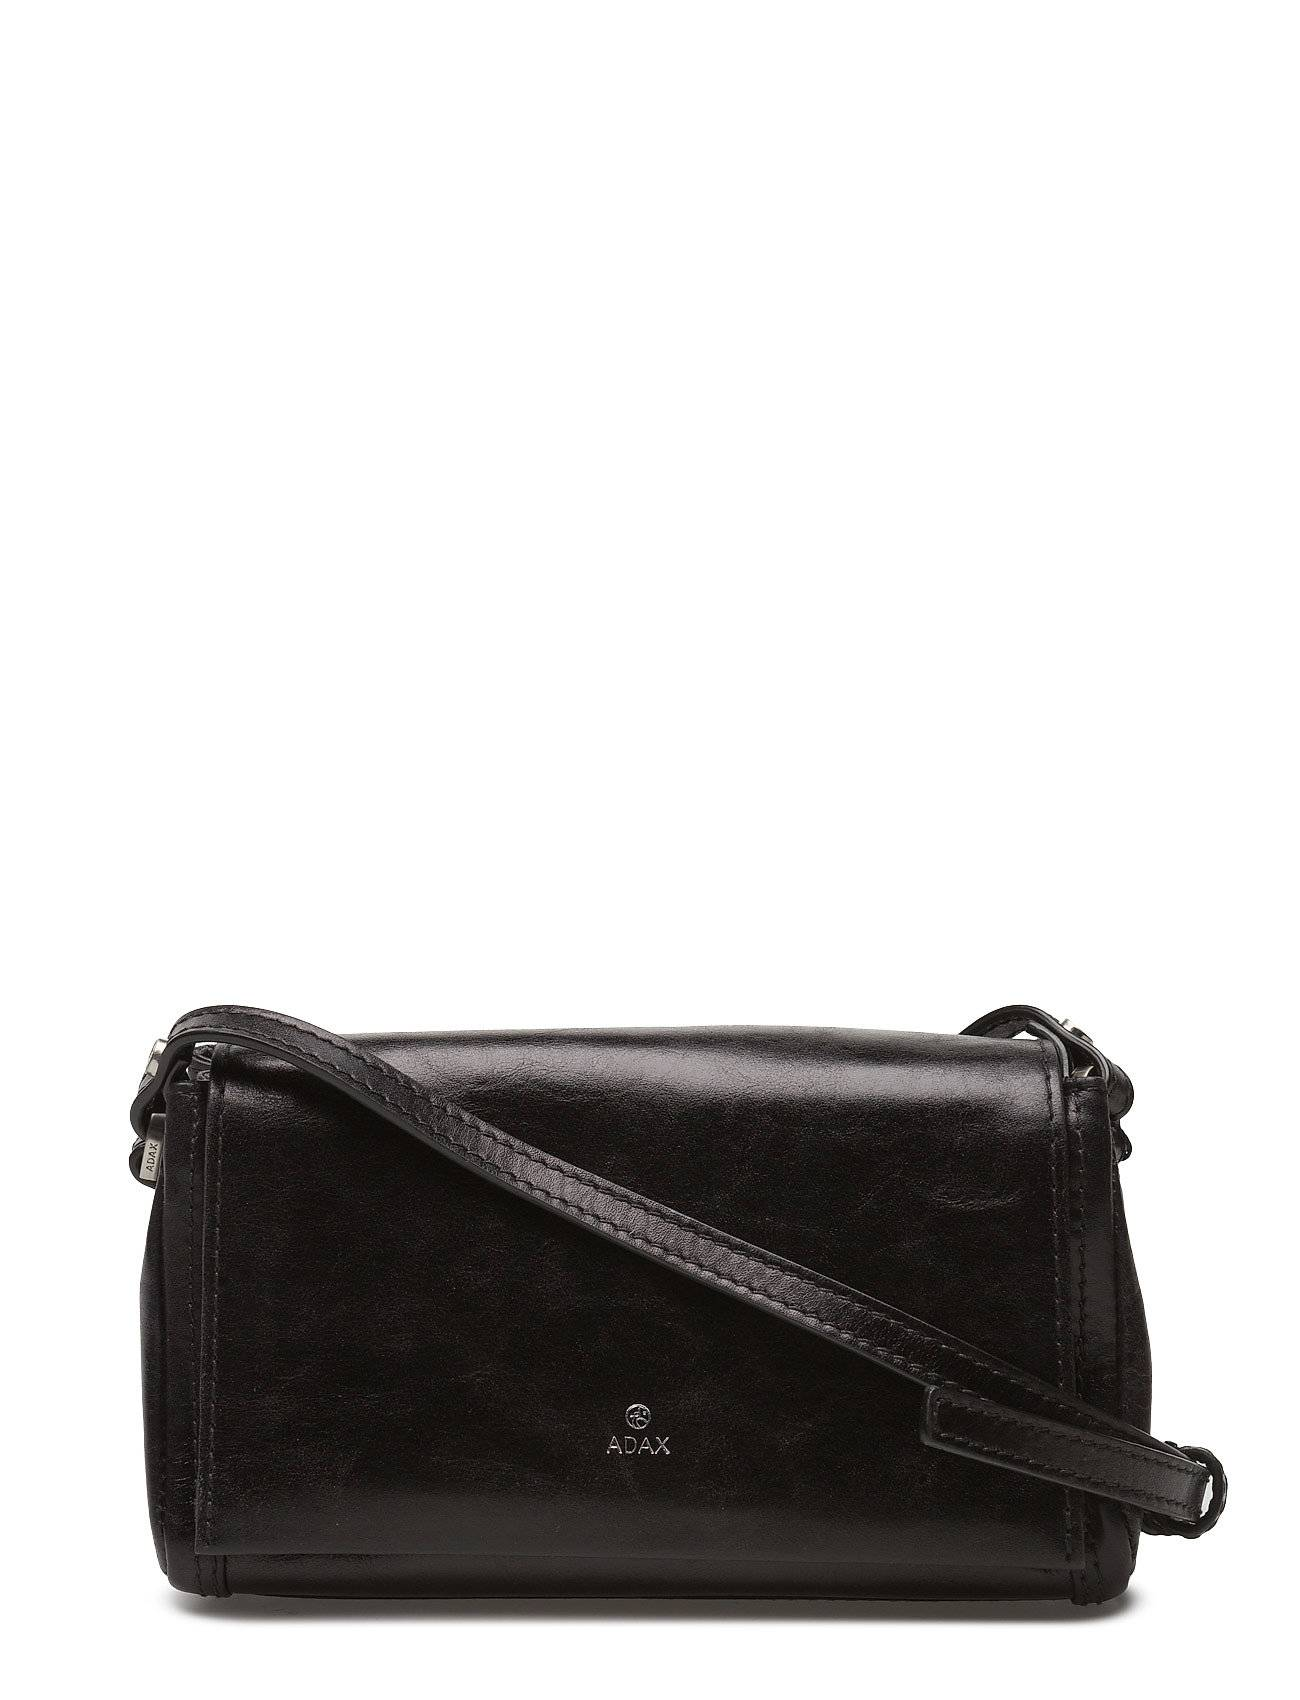 Adax Salerno Shoulder Bag Christa